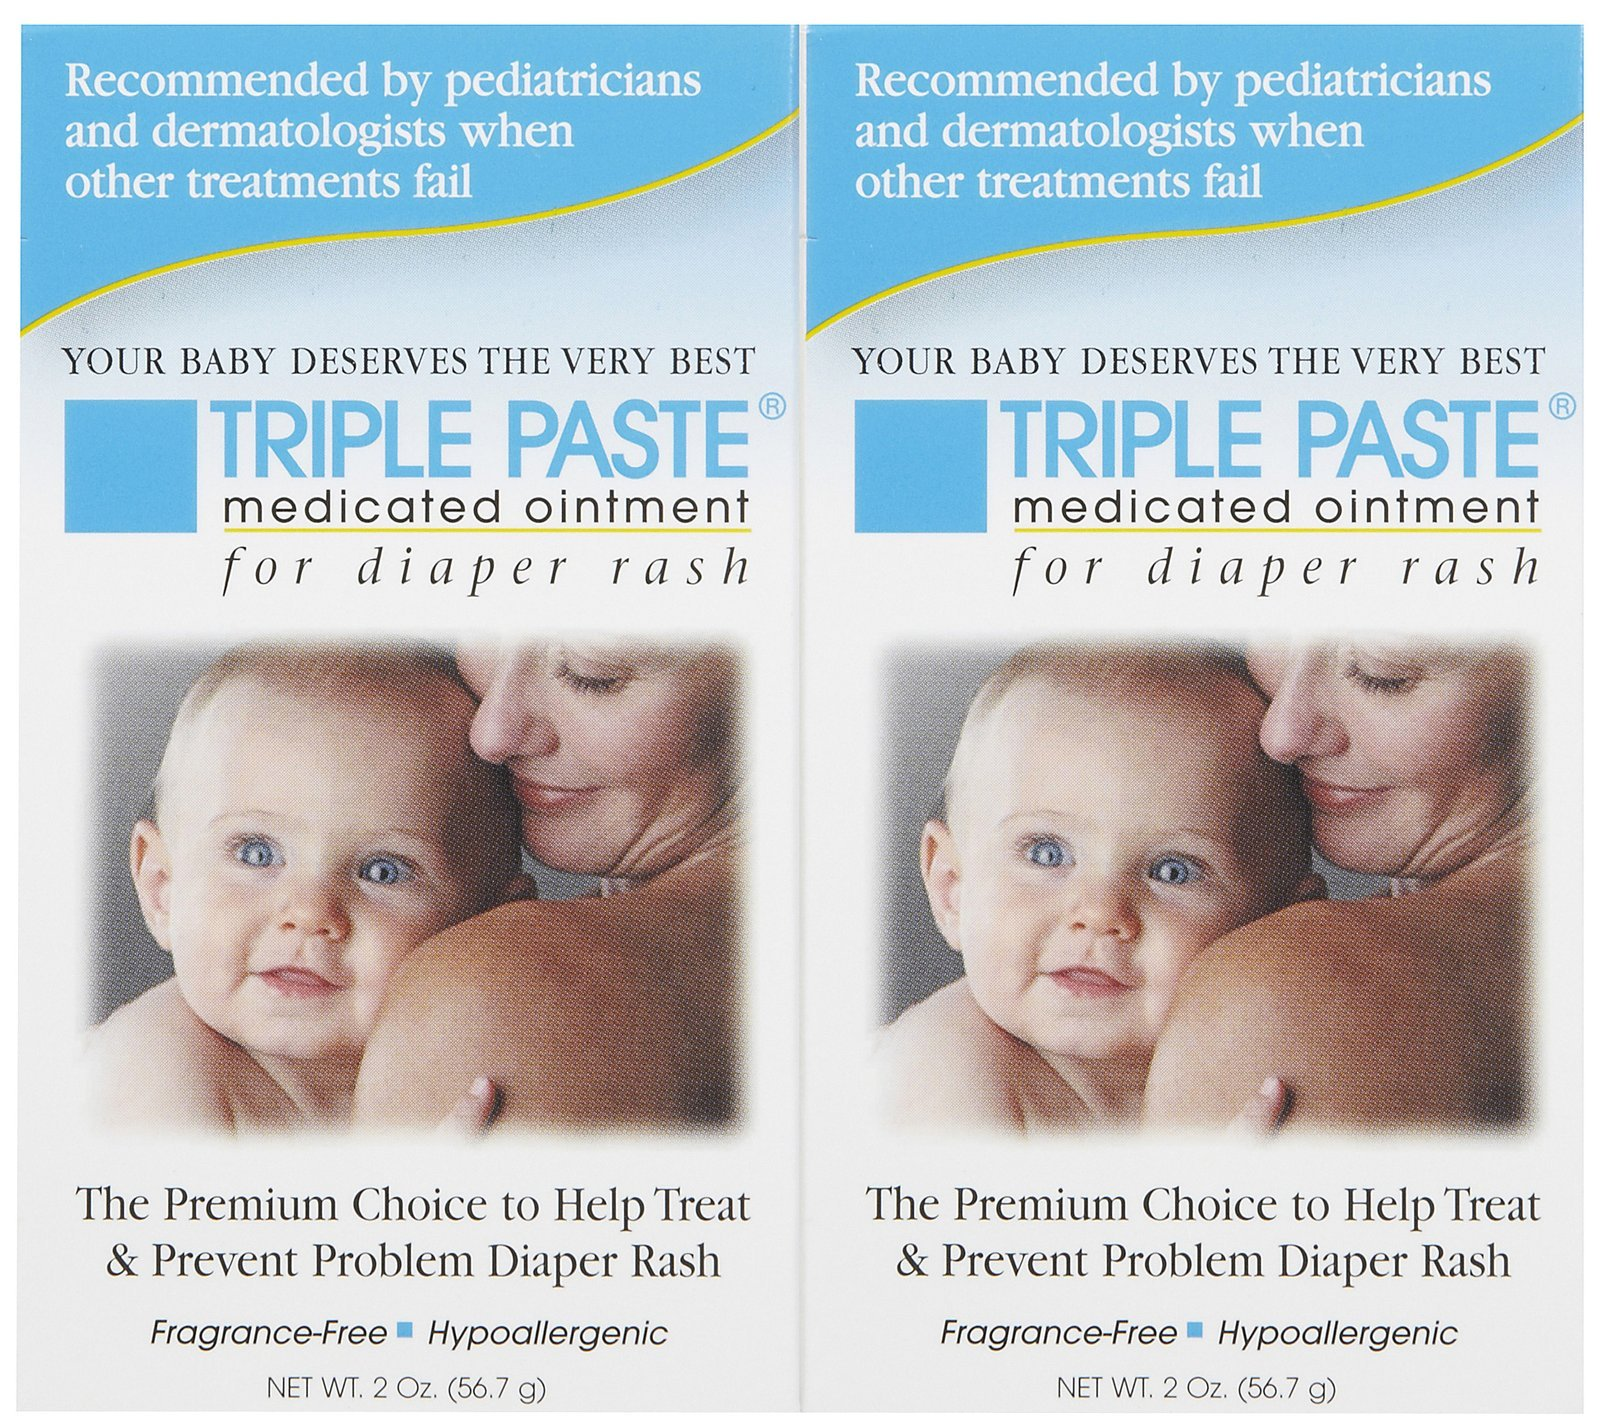 Triple Paste Medicated Ointment for Diaper Rash, Hypoallergenic - 2 oz (Pack of 1)